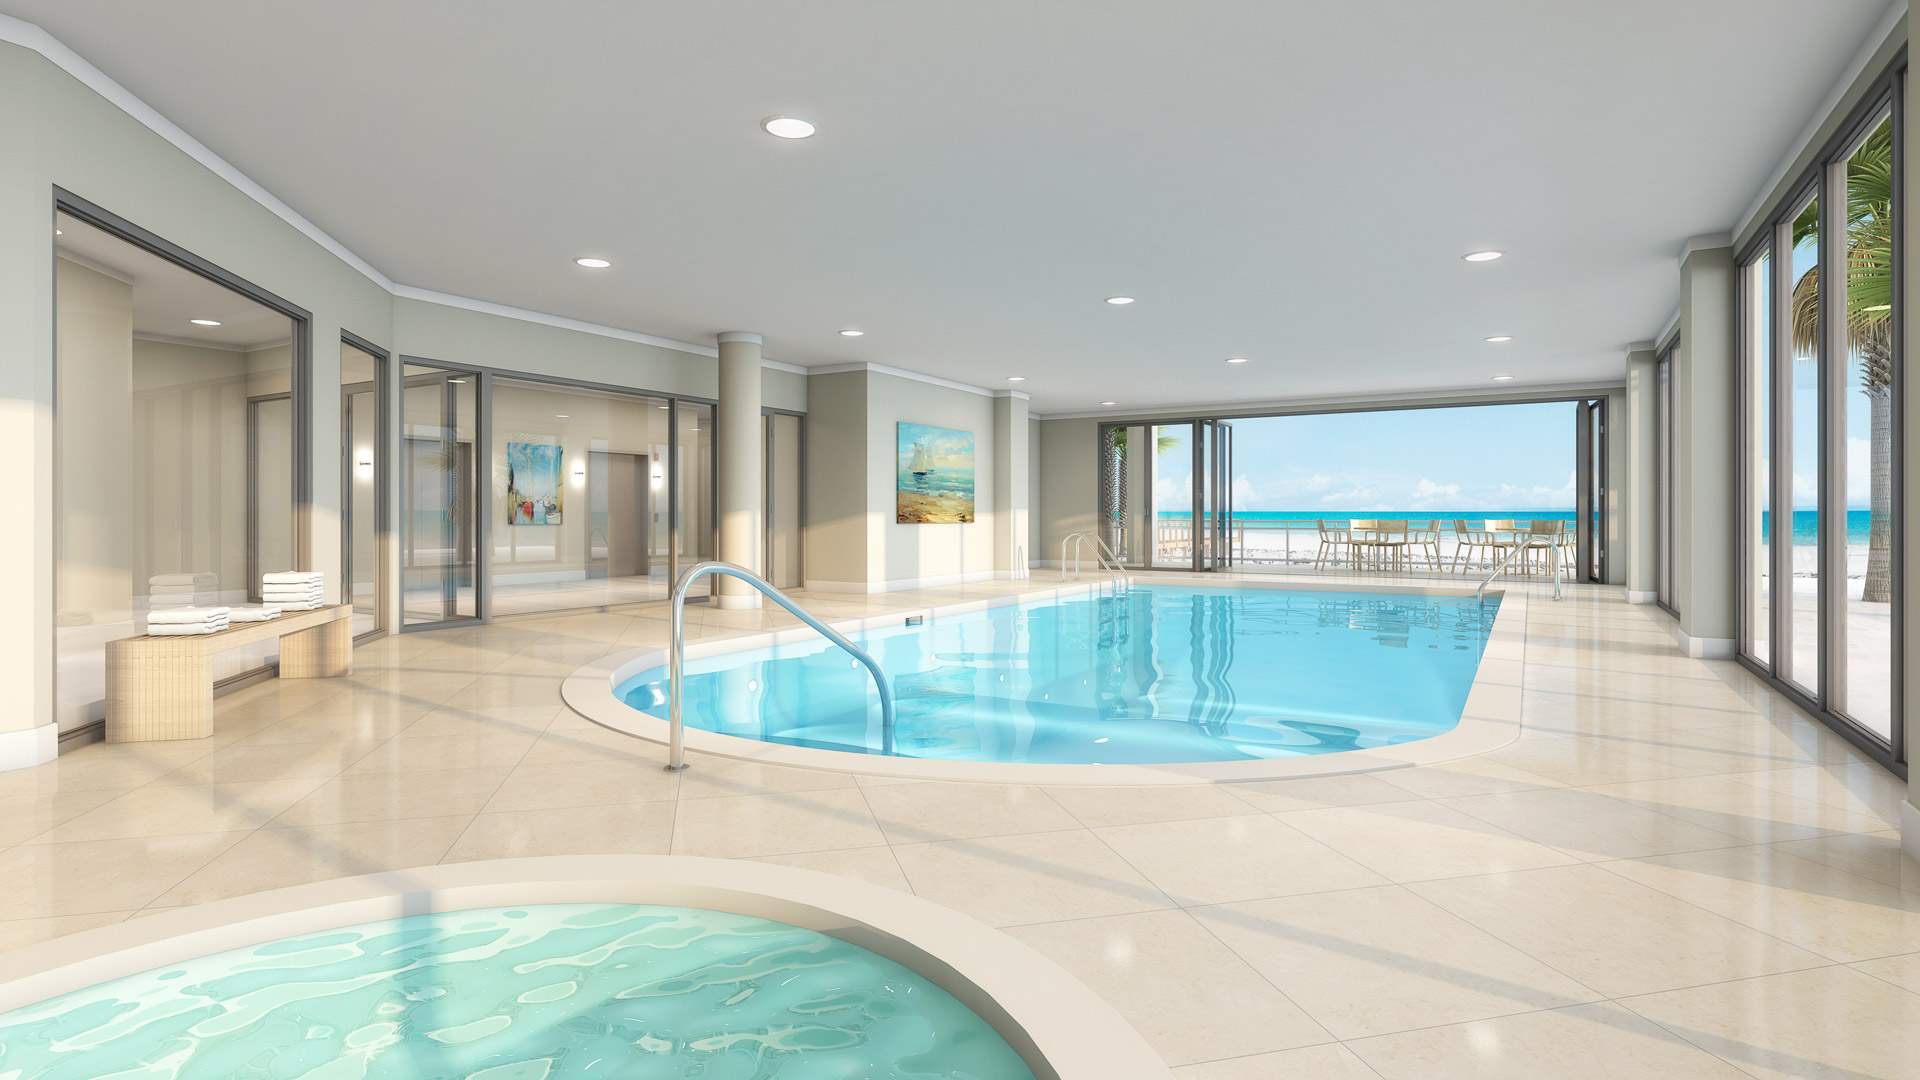 3d rendering of the ground floor indoor pool and hot tub overlooking the beach and ocean.